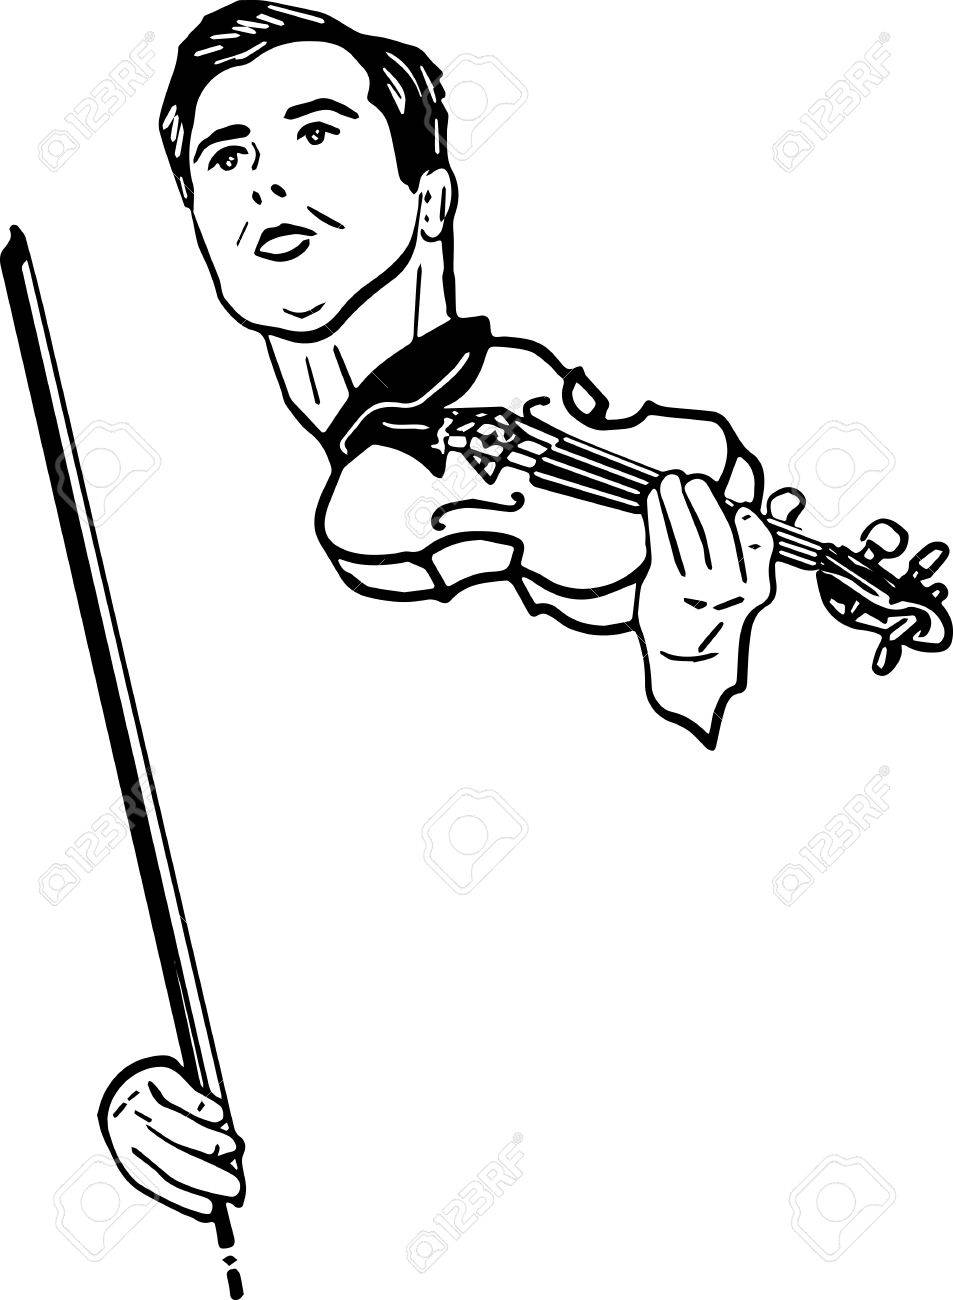 Black and white sketch of a musician with violin